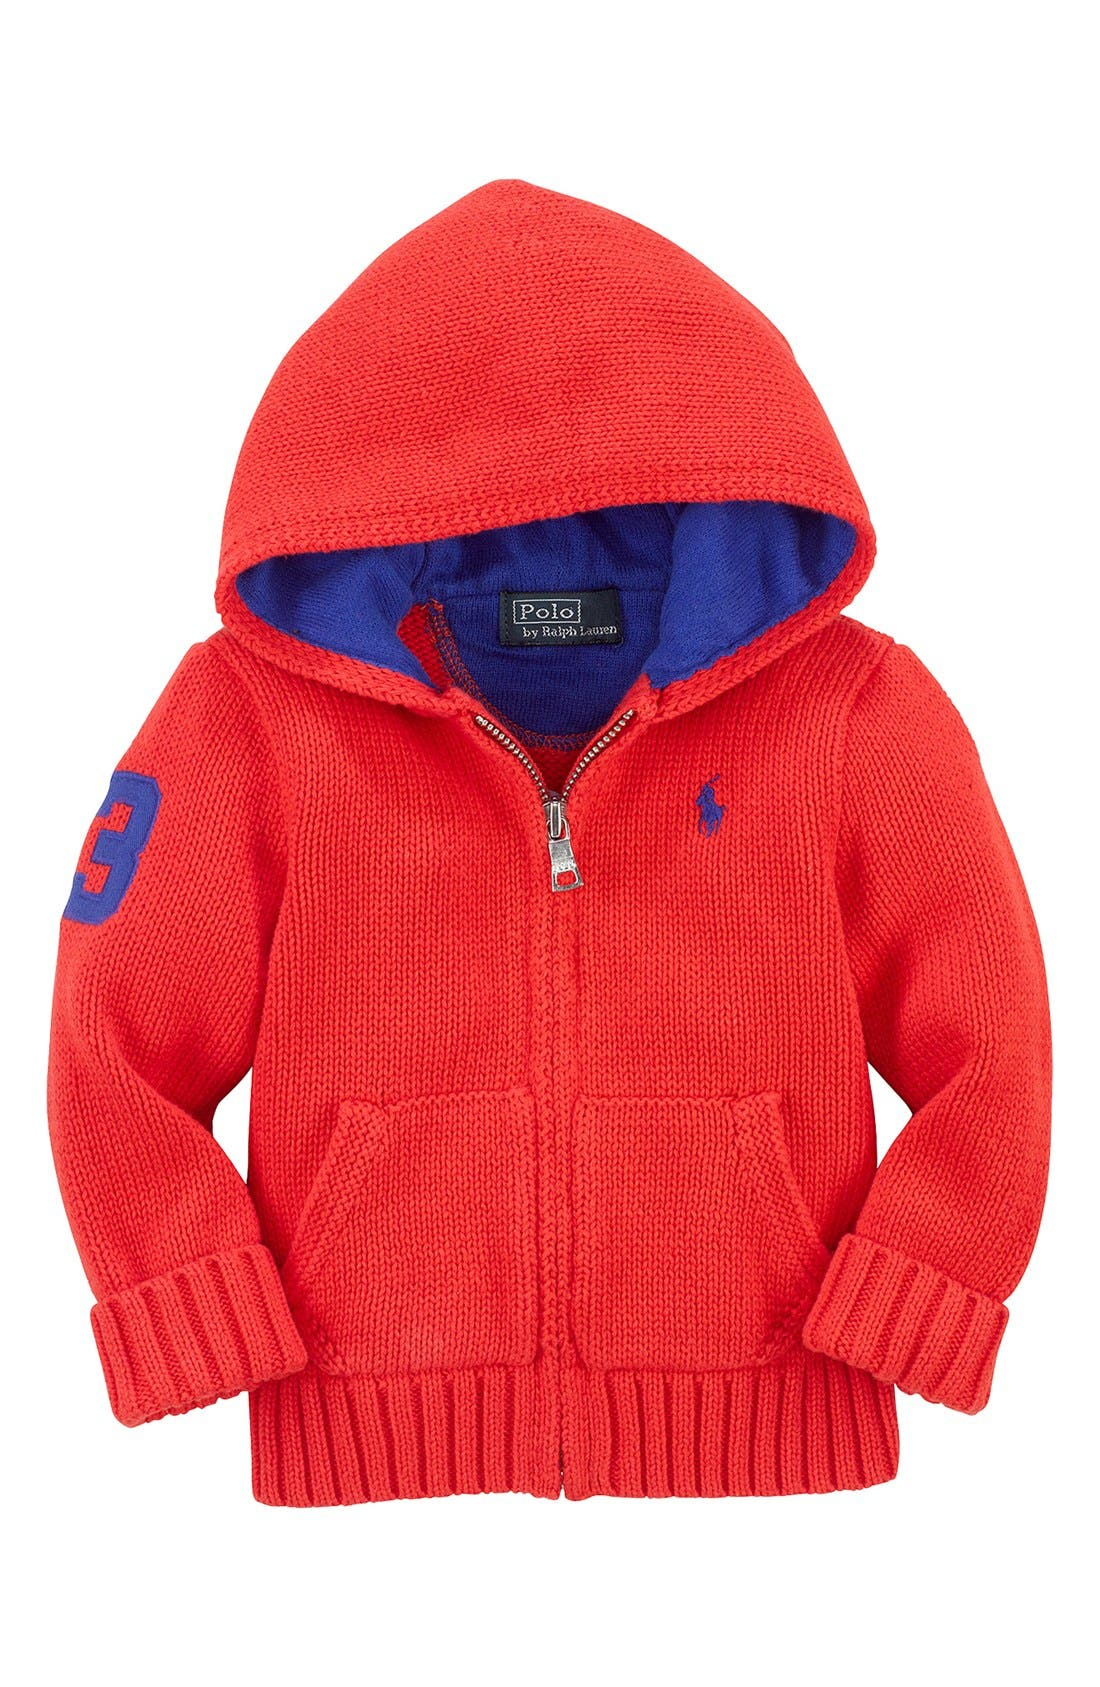 Main Image - Ralph Lauren Combed Cotton Full Zip Hoodie Cardigan (Baby Boys)